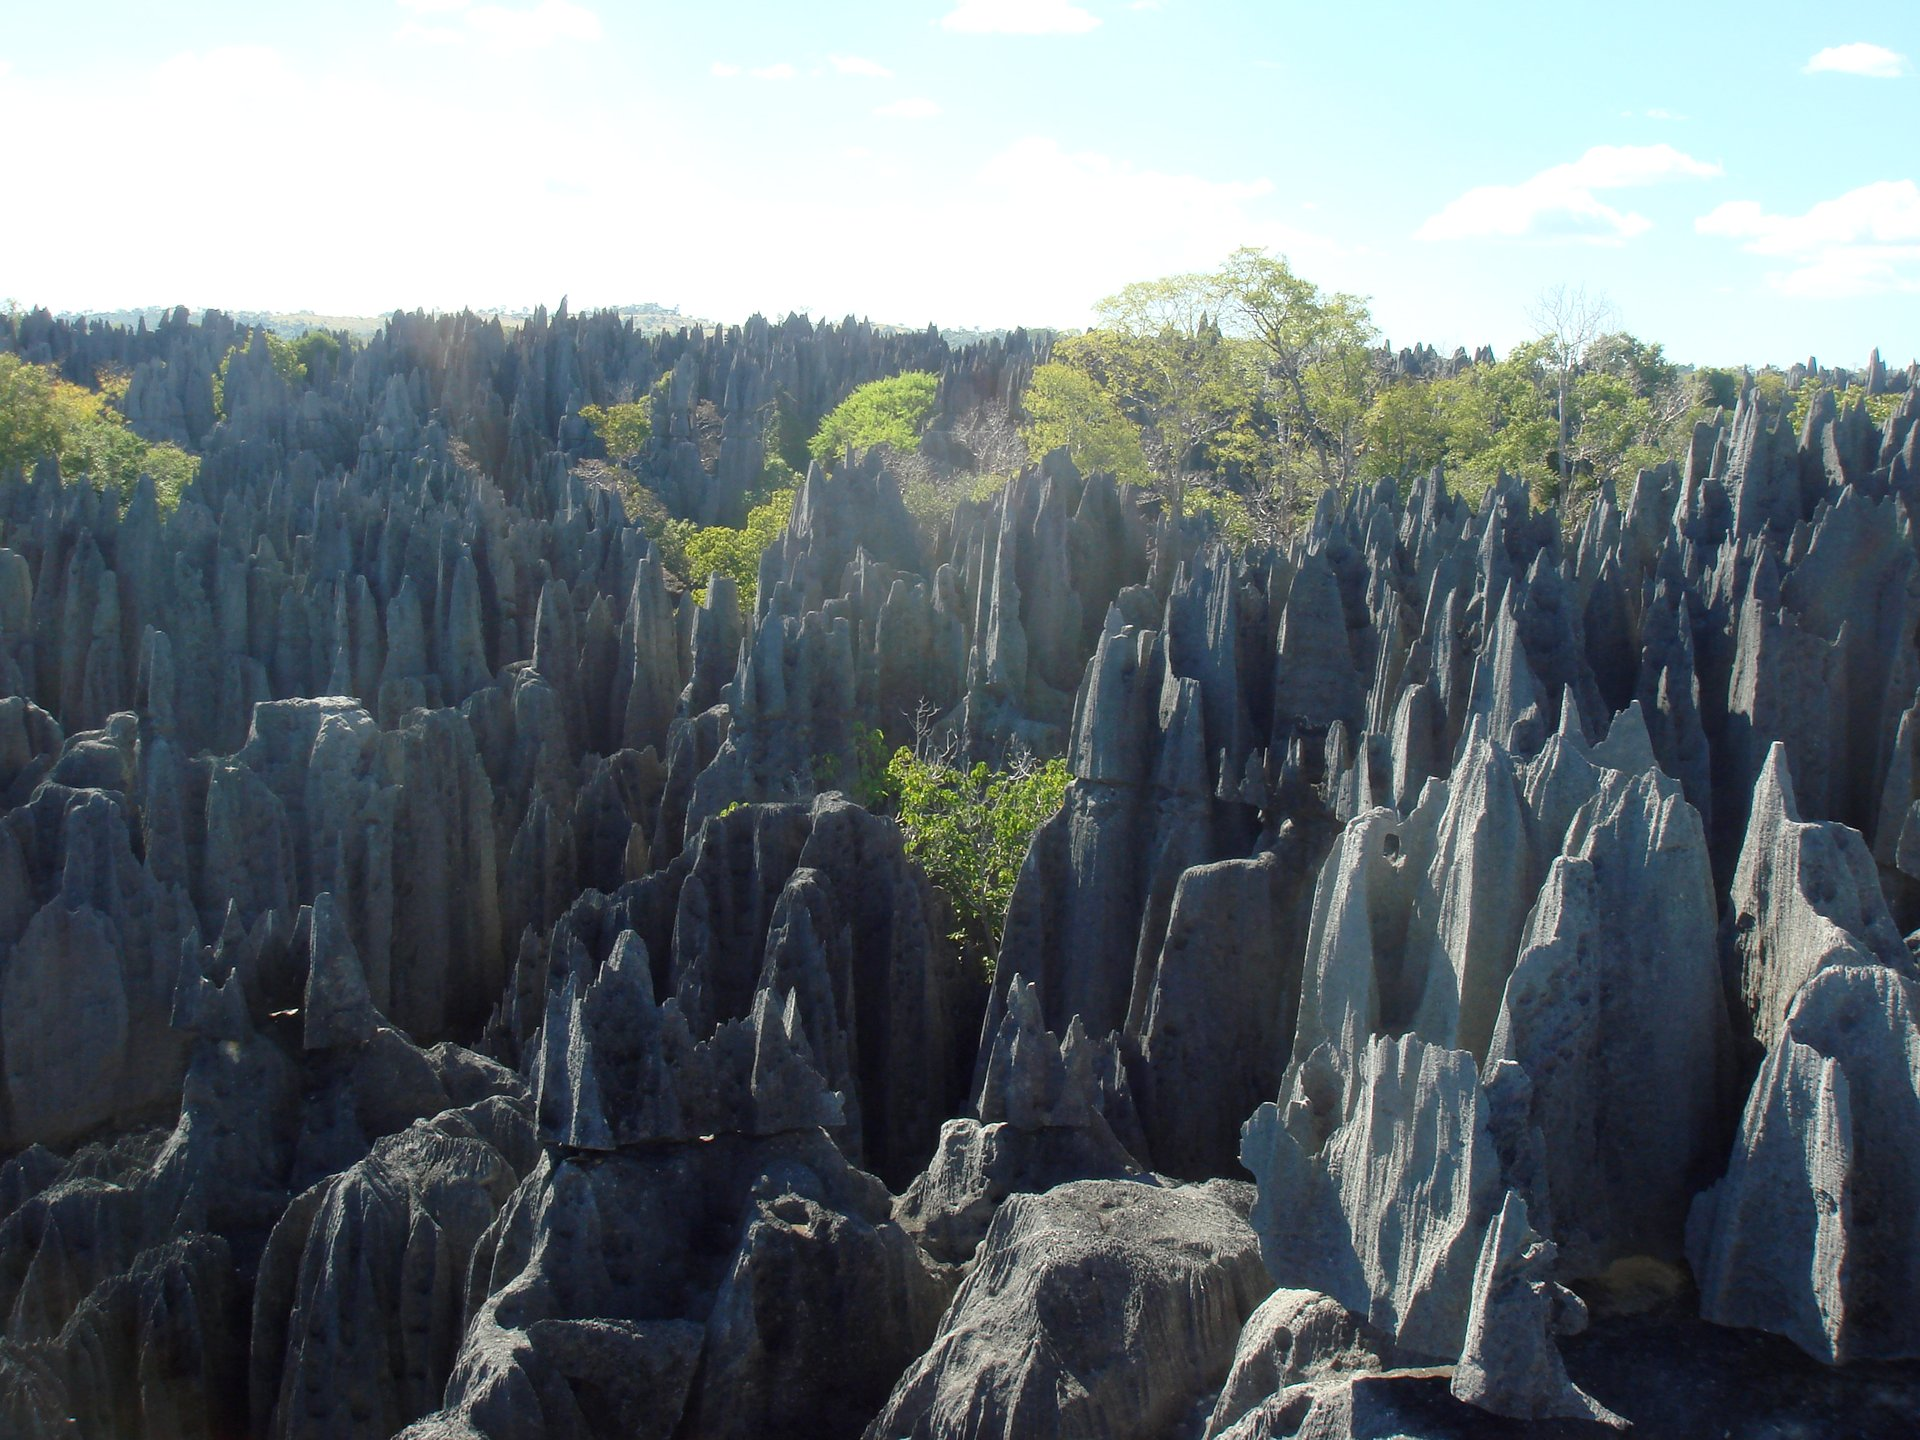 Stone Forest Tsingy de Bemaraha in Madagascar - Best Season 2020